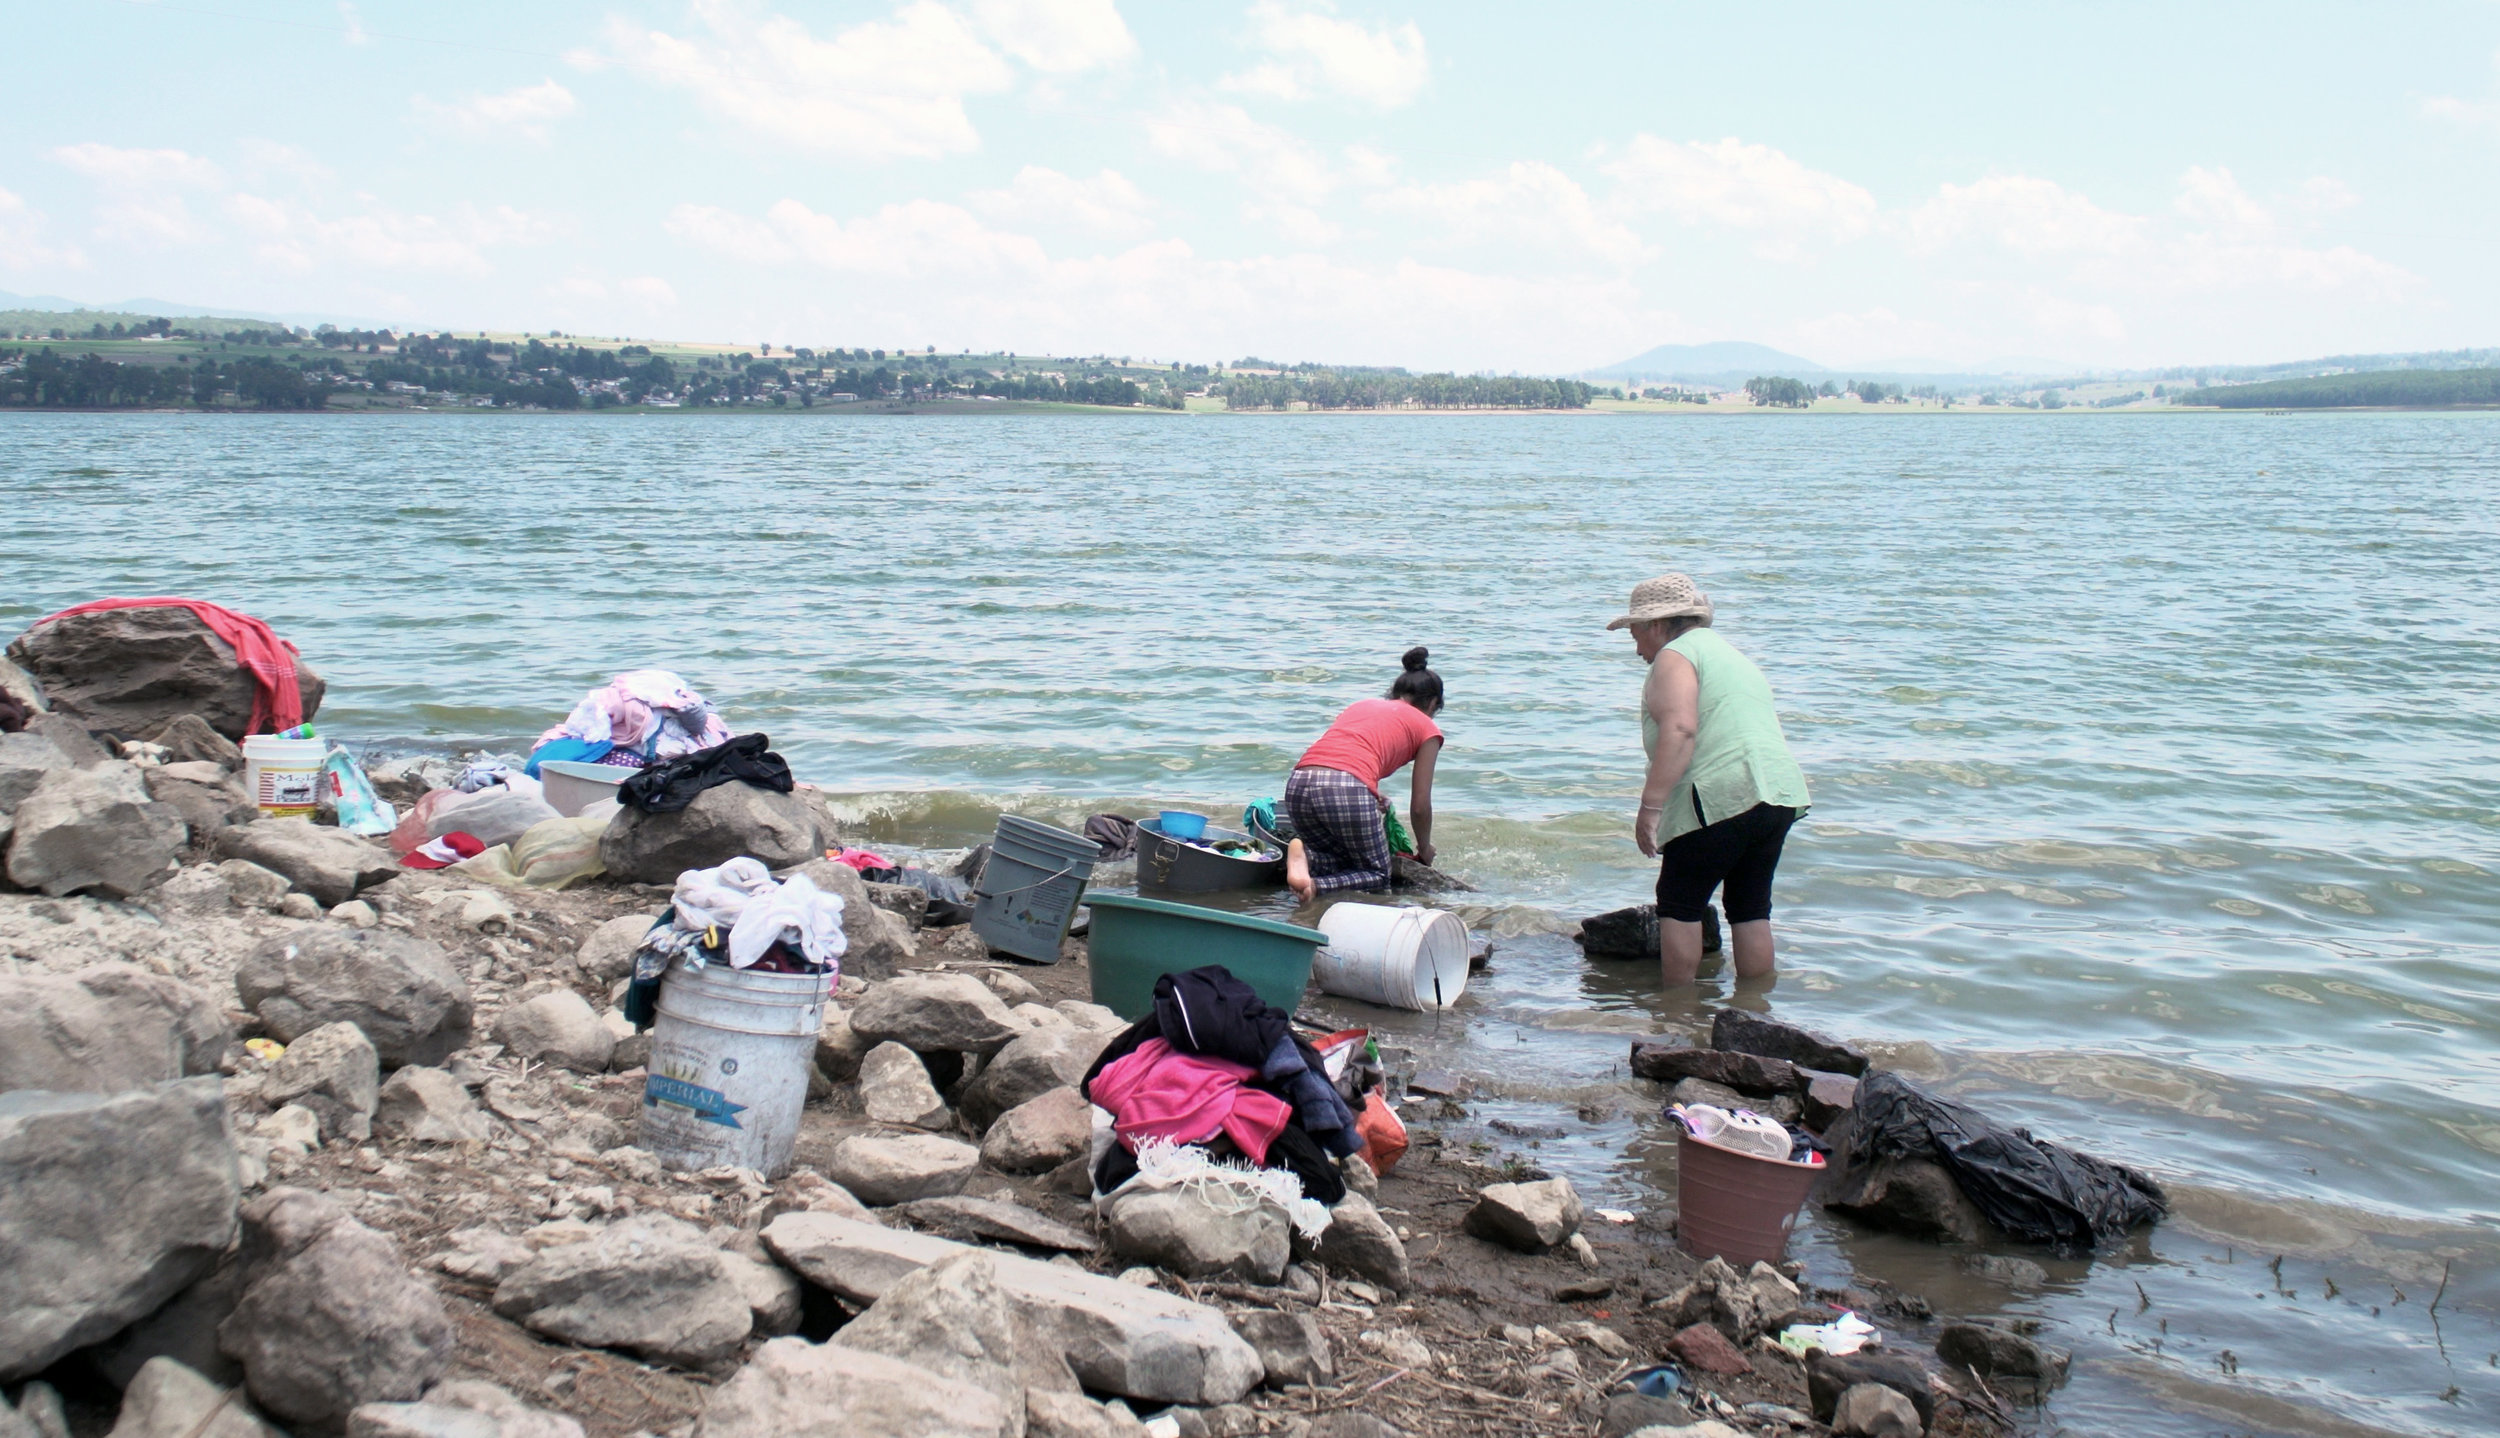 Women clean laundry in Villa Victoria, which is one of the ten dams within the Cutzamala System sub-basins.